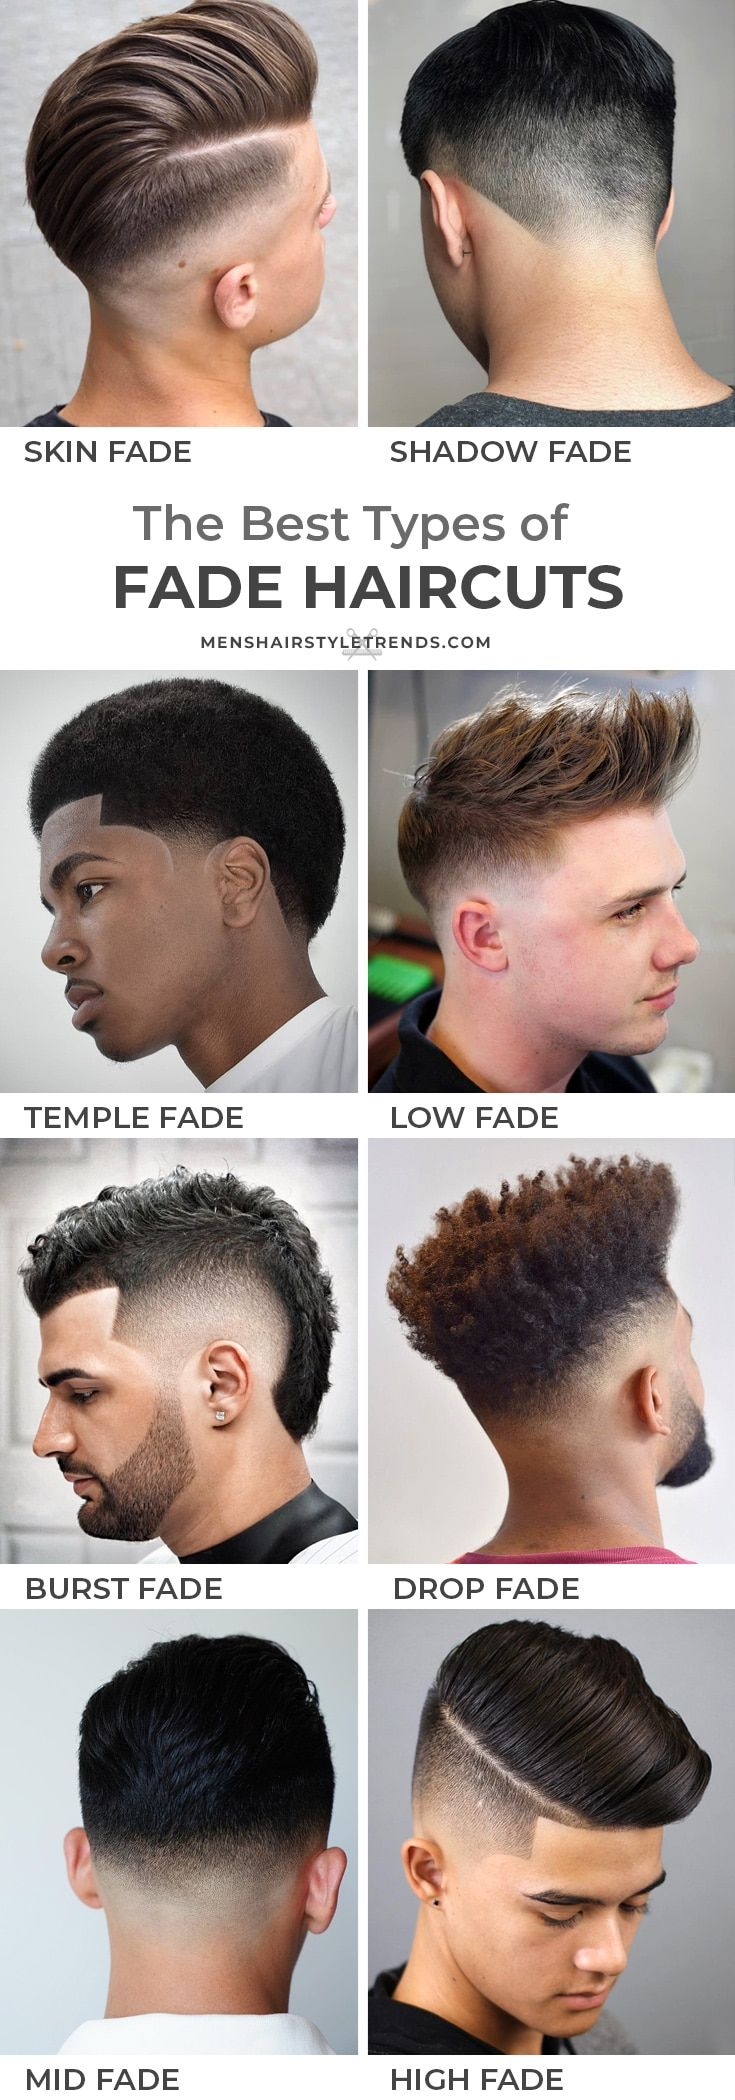 Types Of Fade Haircuts 2021 Update Types Of Fade Haircut Faded Hair Mid Fade Haircut